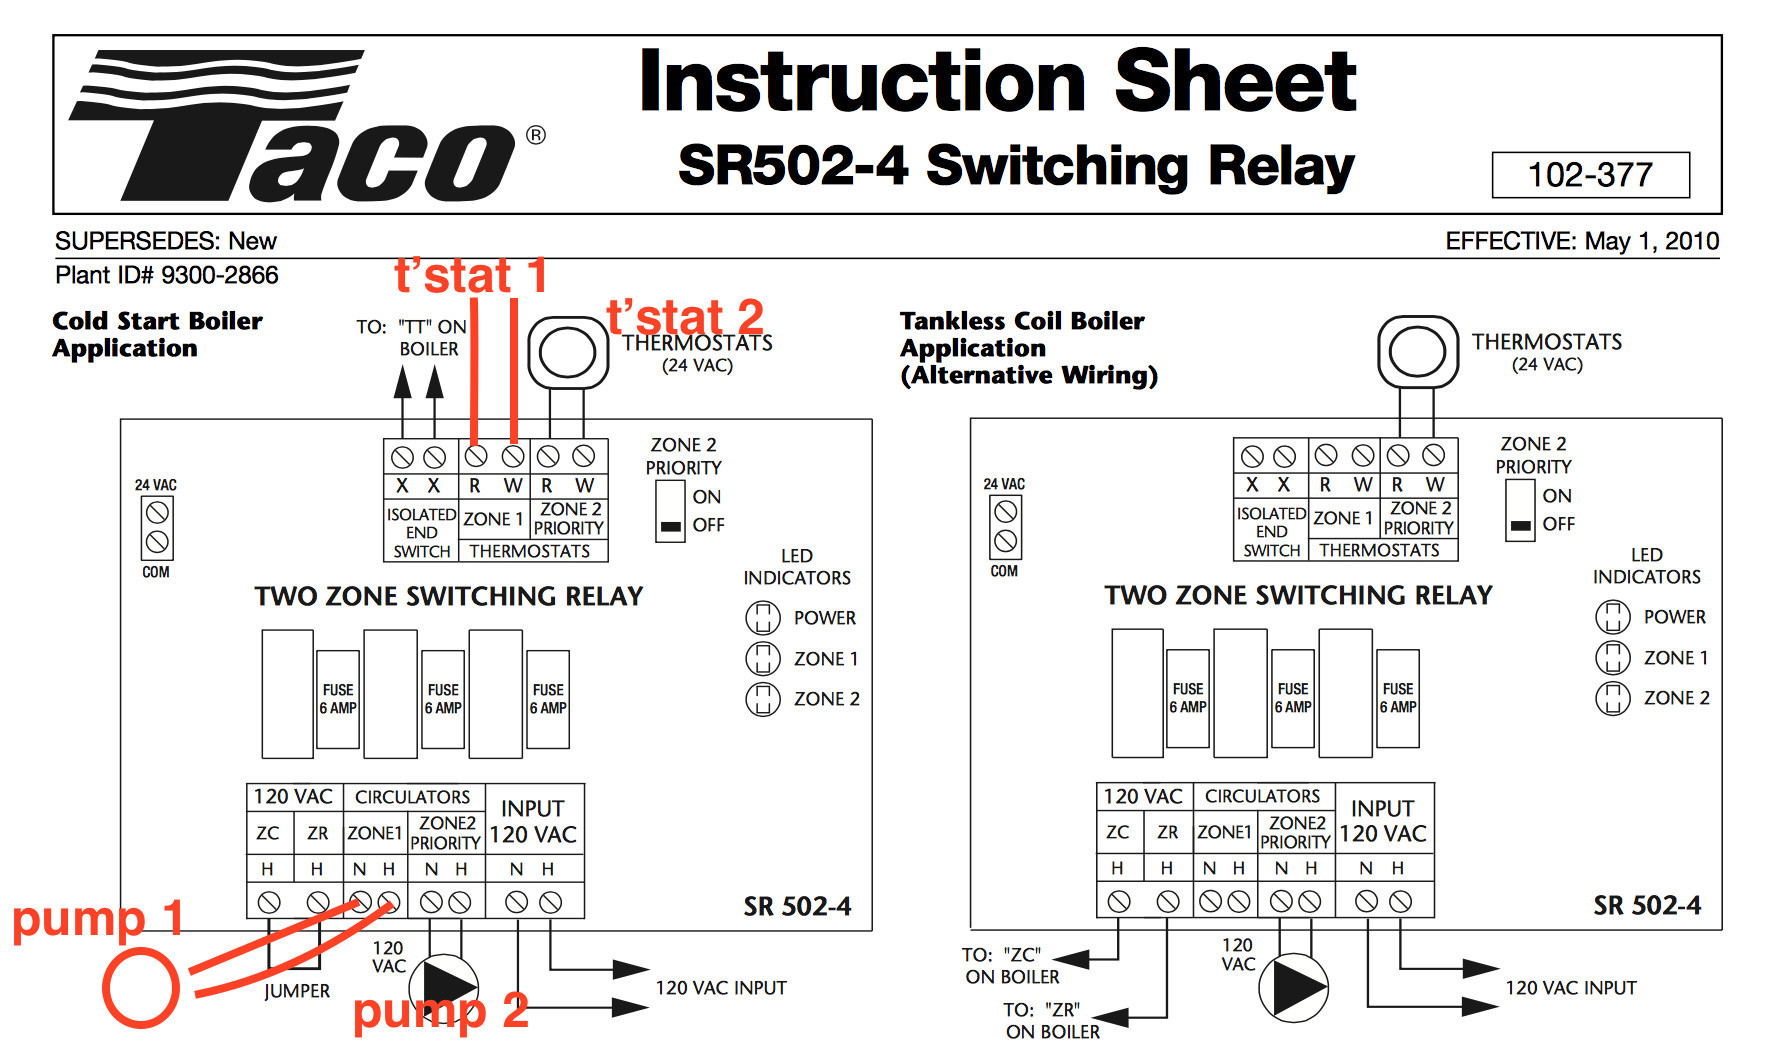 taco 007 f5 wiring diagram Download-Wiring Diagram Detail Name taco circulator 9-q